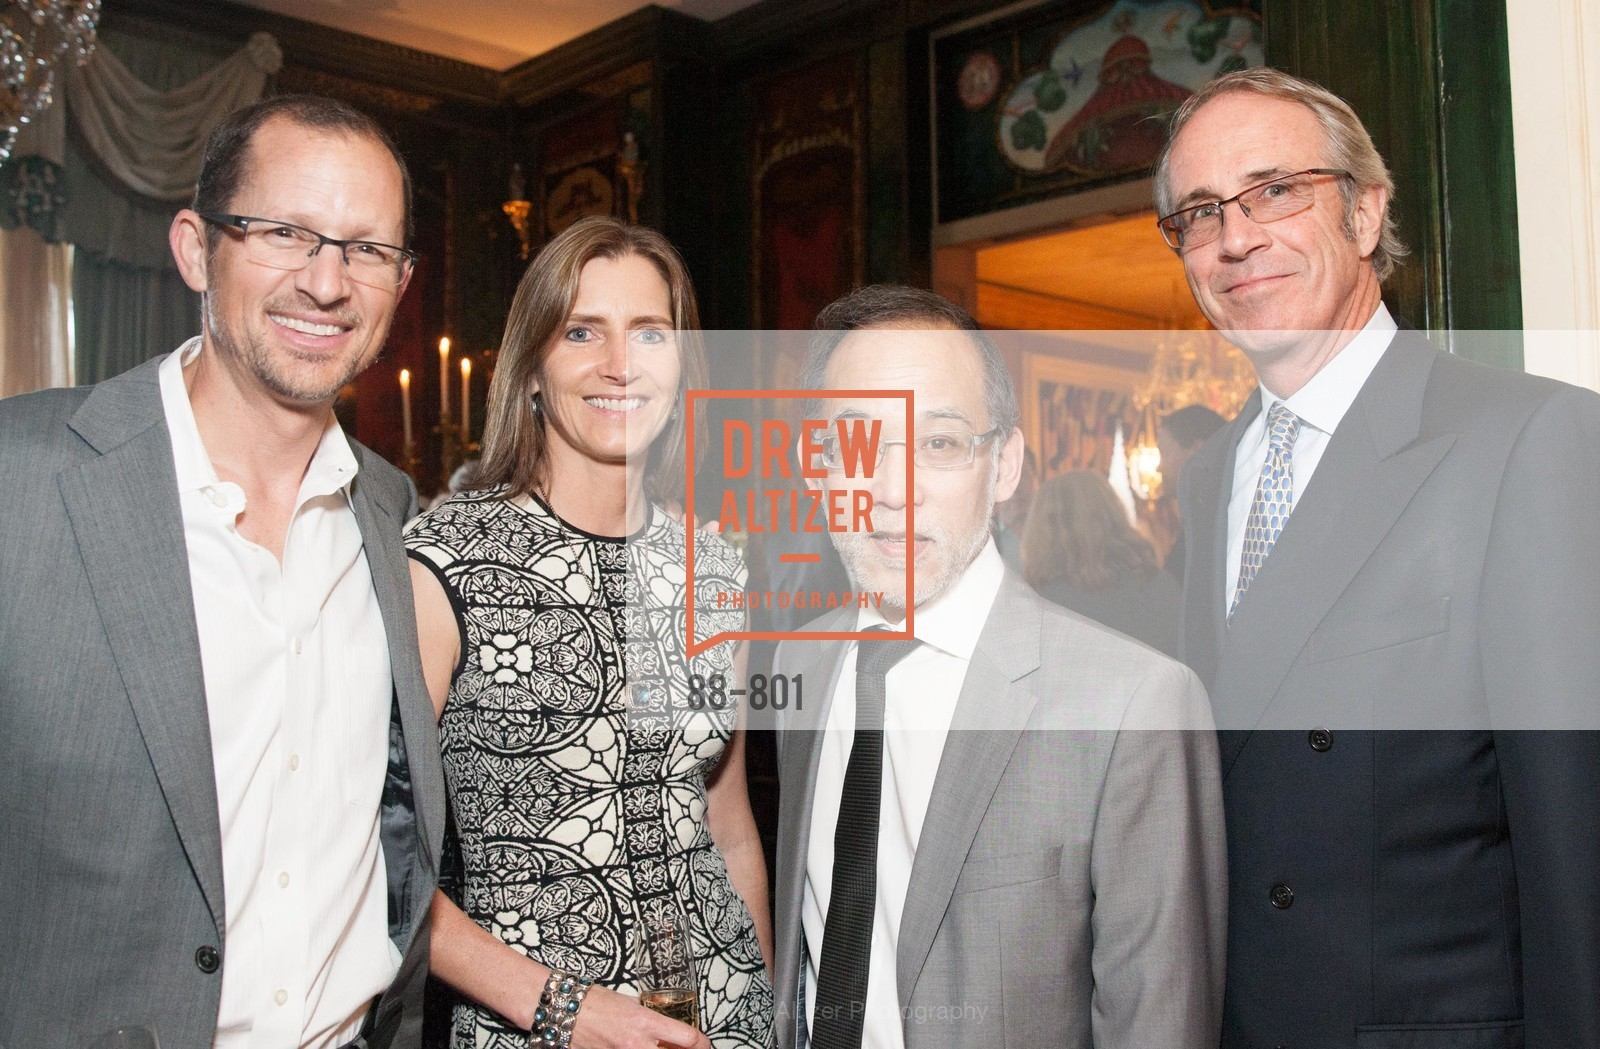 Jeff Maggioncalda, Anne Maggioncalda, John Mitani, John Kunzweiler, GETTY Hosts Leakey Foundation Dinner, US, April 24th, 2015,Drew Altizer, Drew Altizer Photography, full-service agency, private events, San Francisco photographer, photographer california